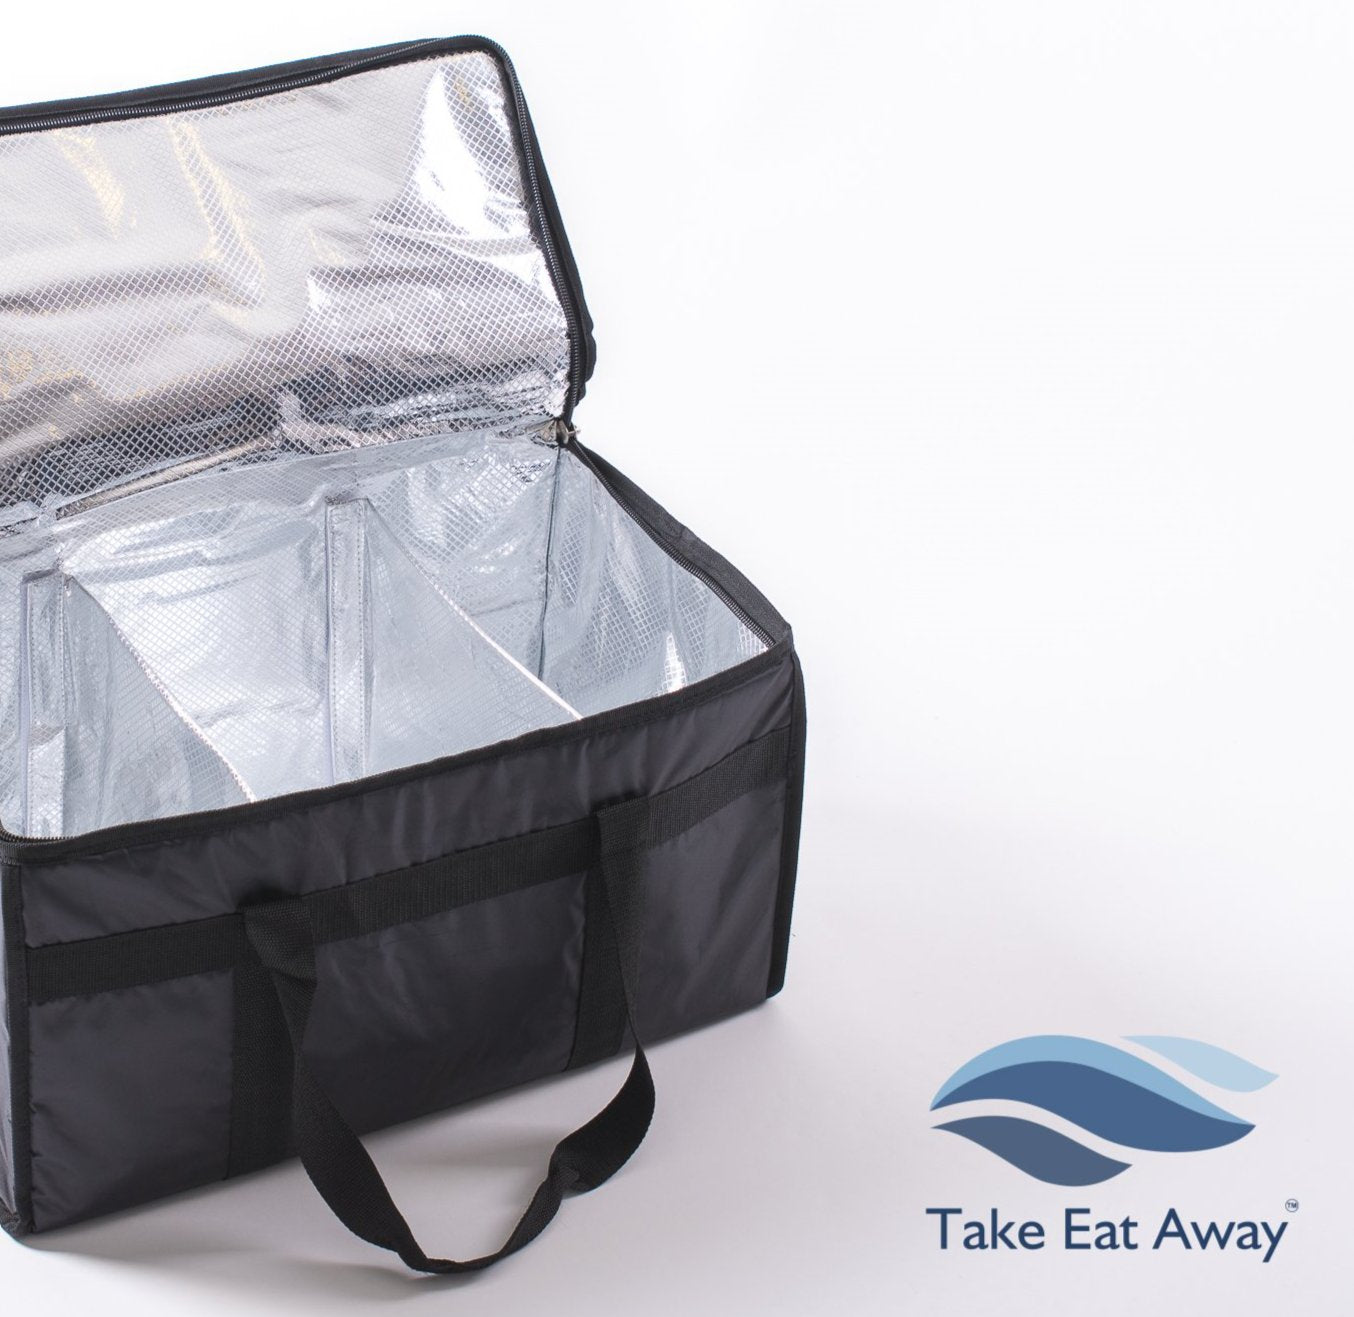 *T20 Food Delivery Extra Large Thermal Bag with Dividers-39 litres